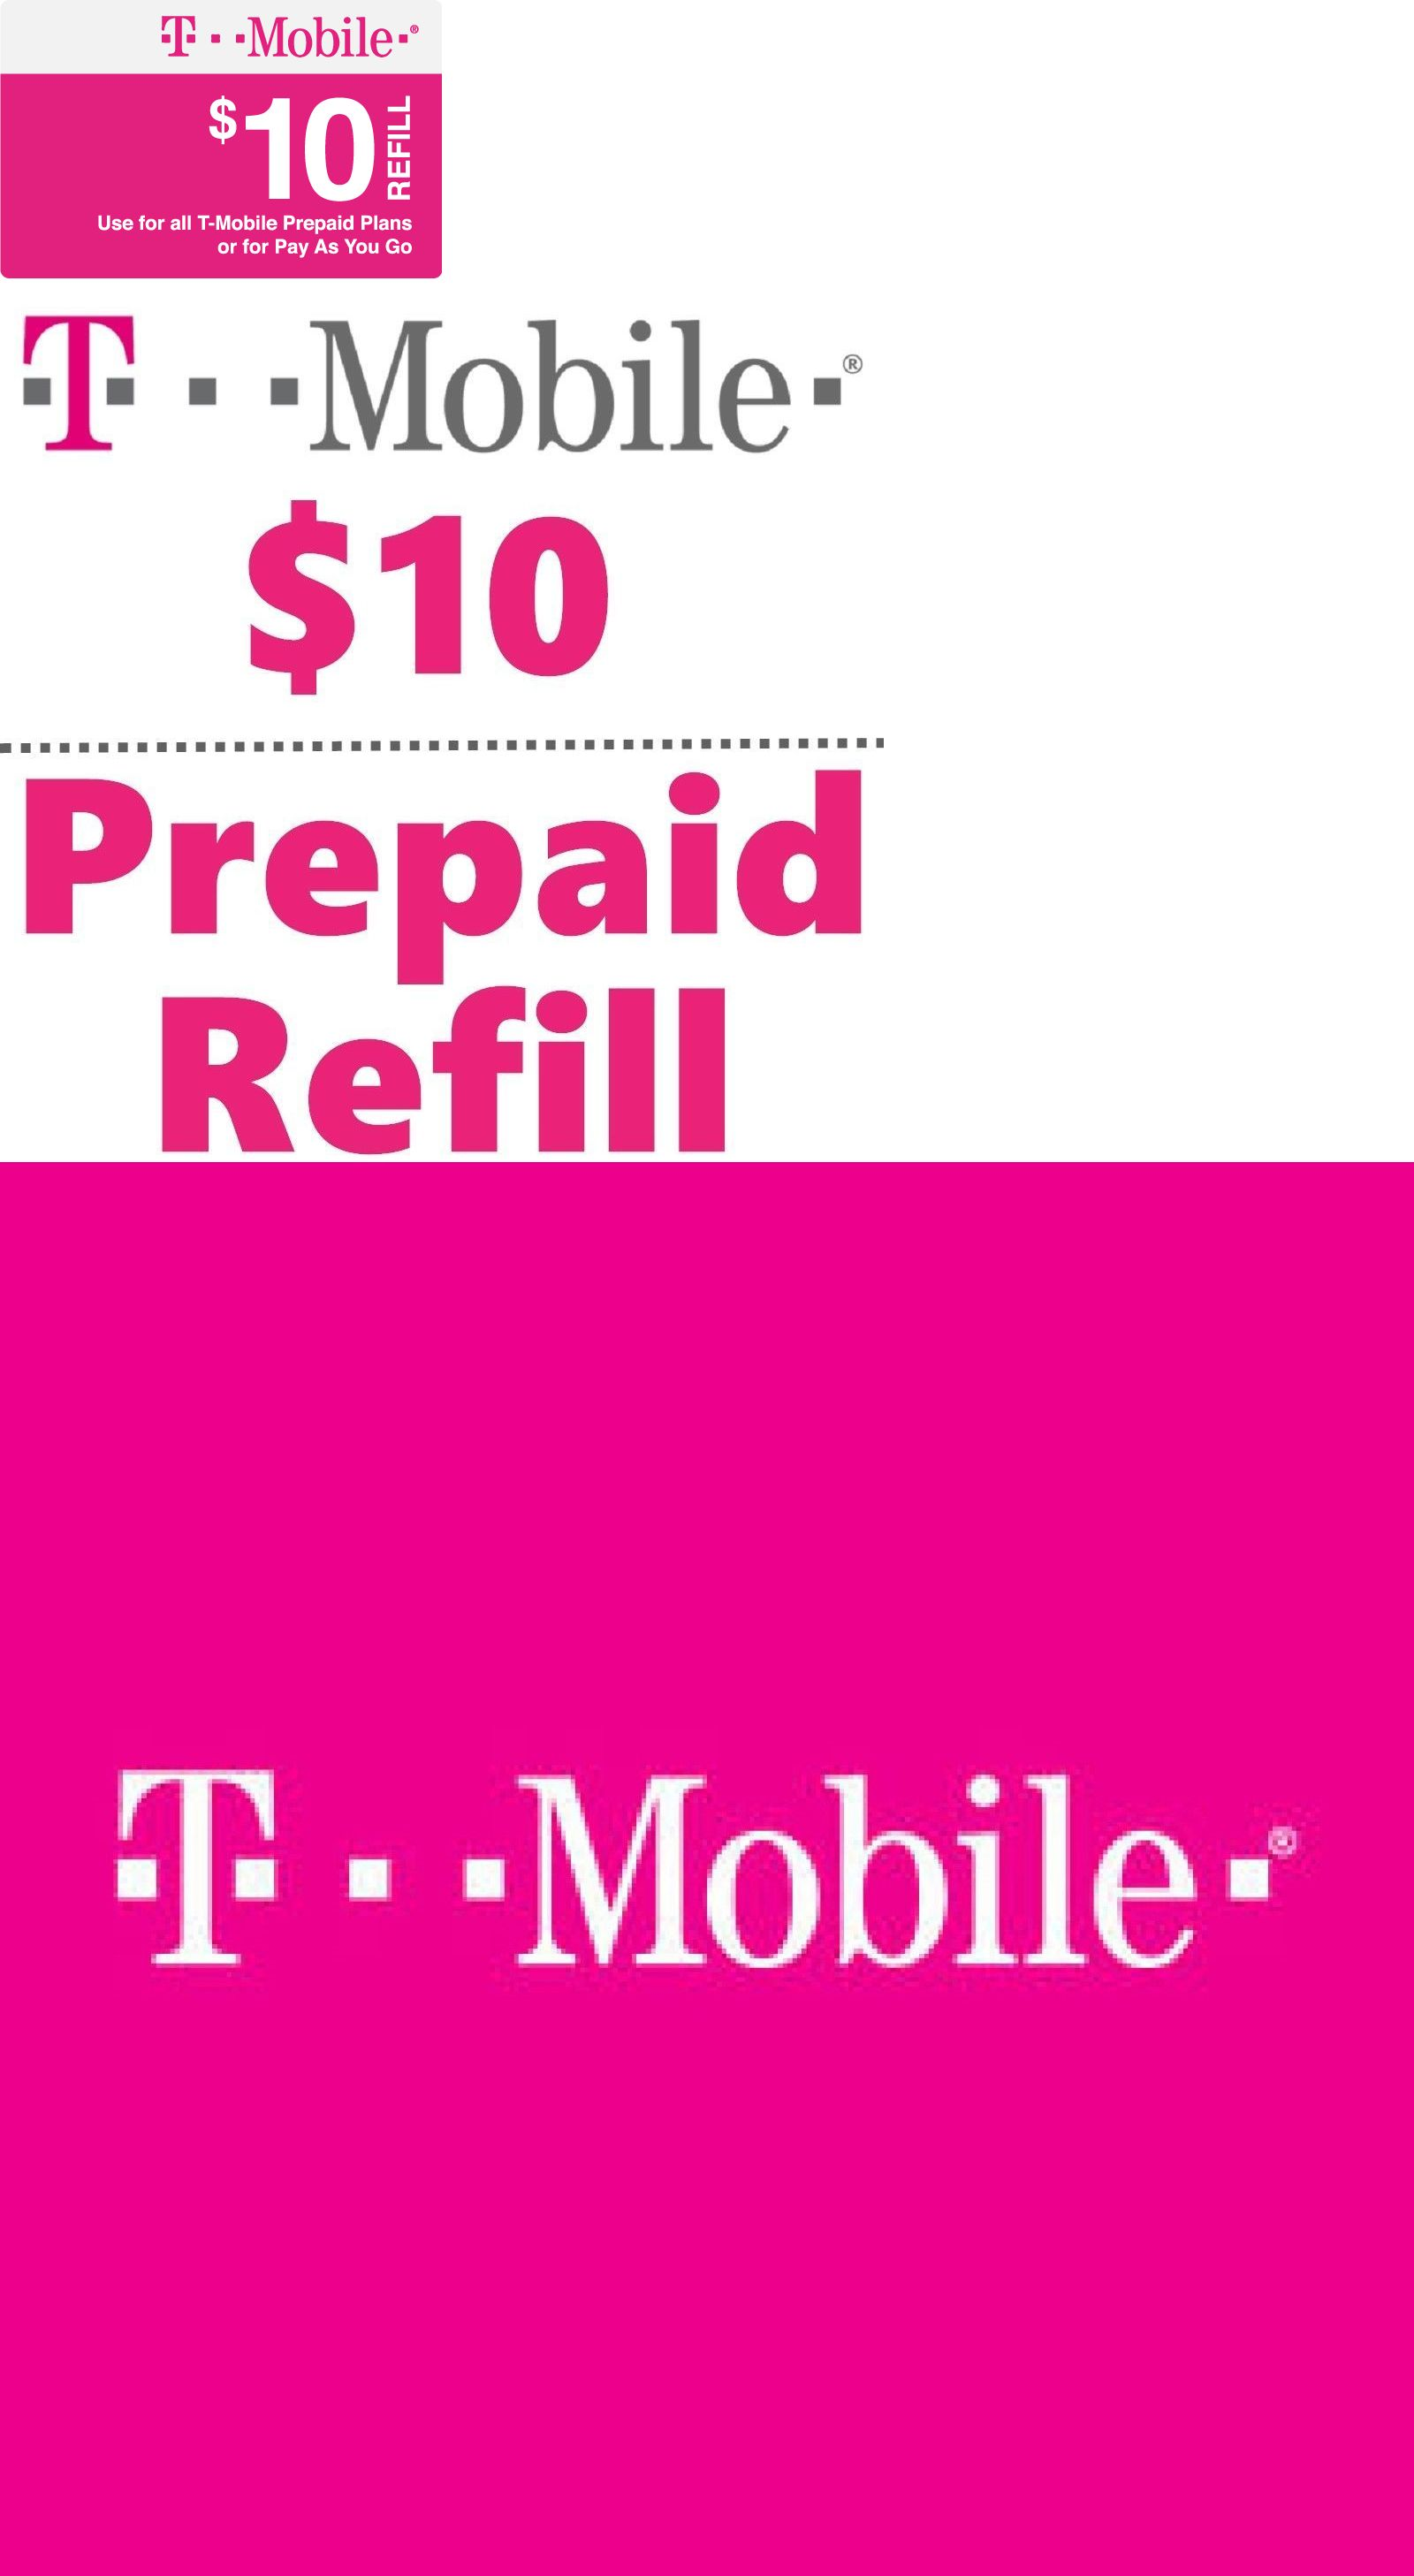 Phone and Data Cards 43308: T-Mobile Prepaid $10 Refill Top